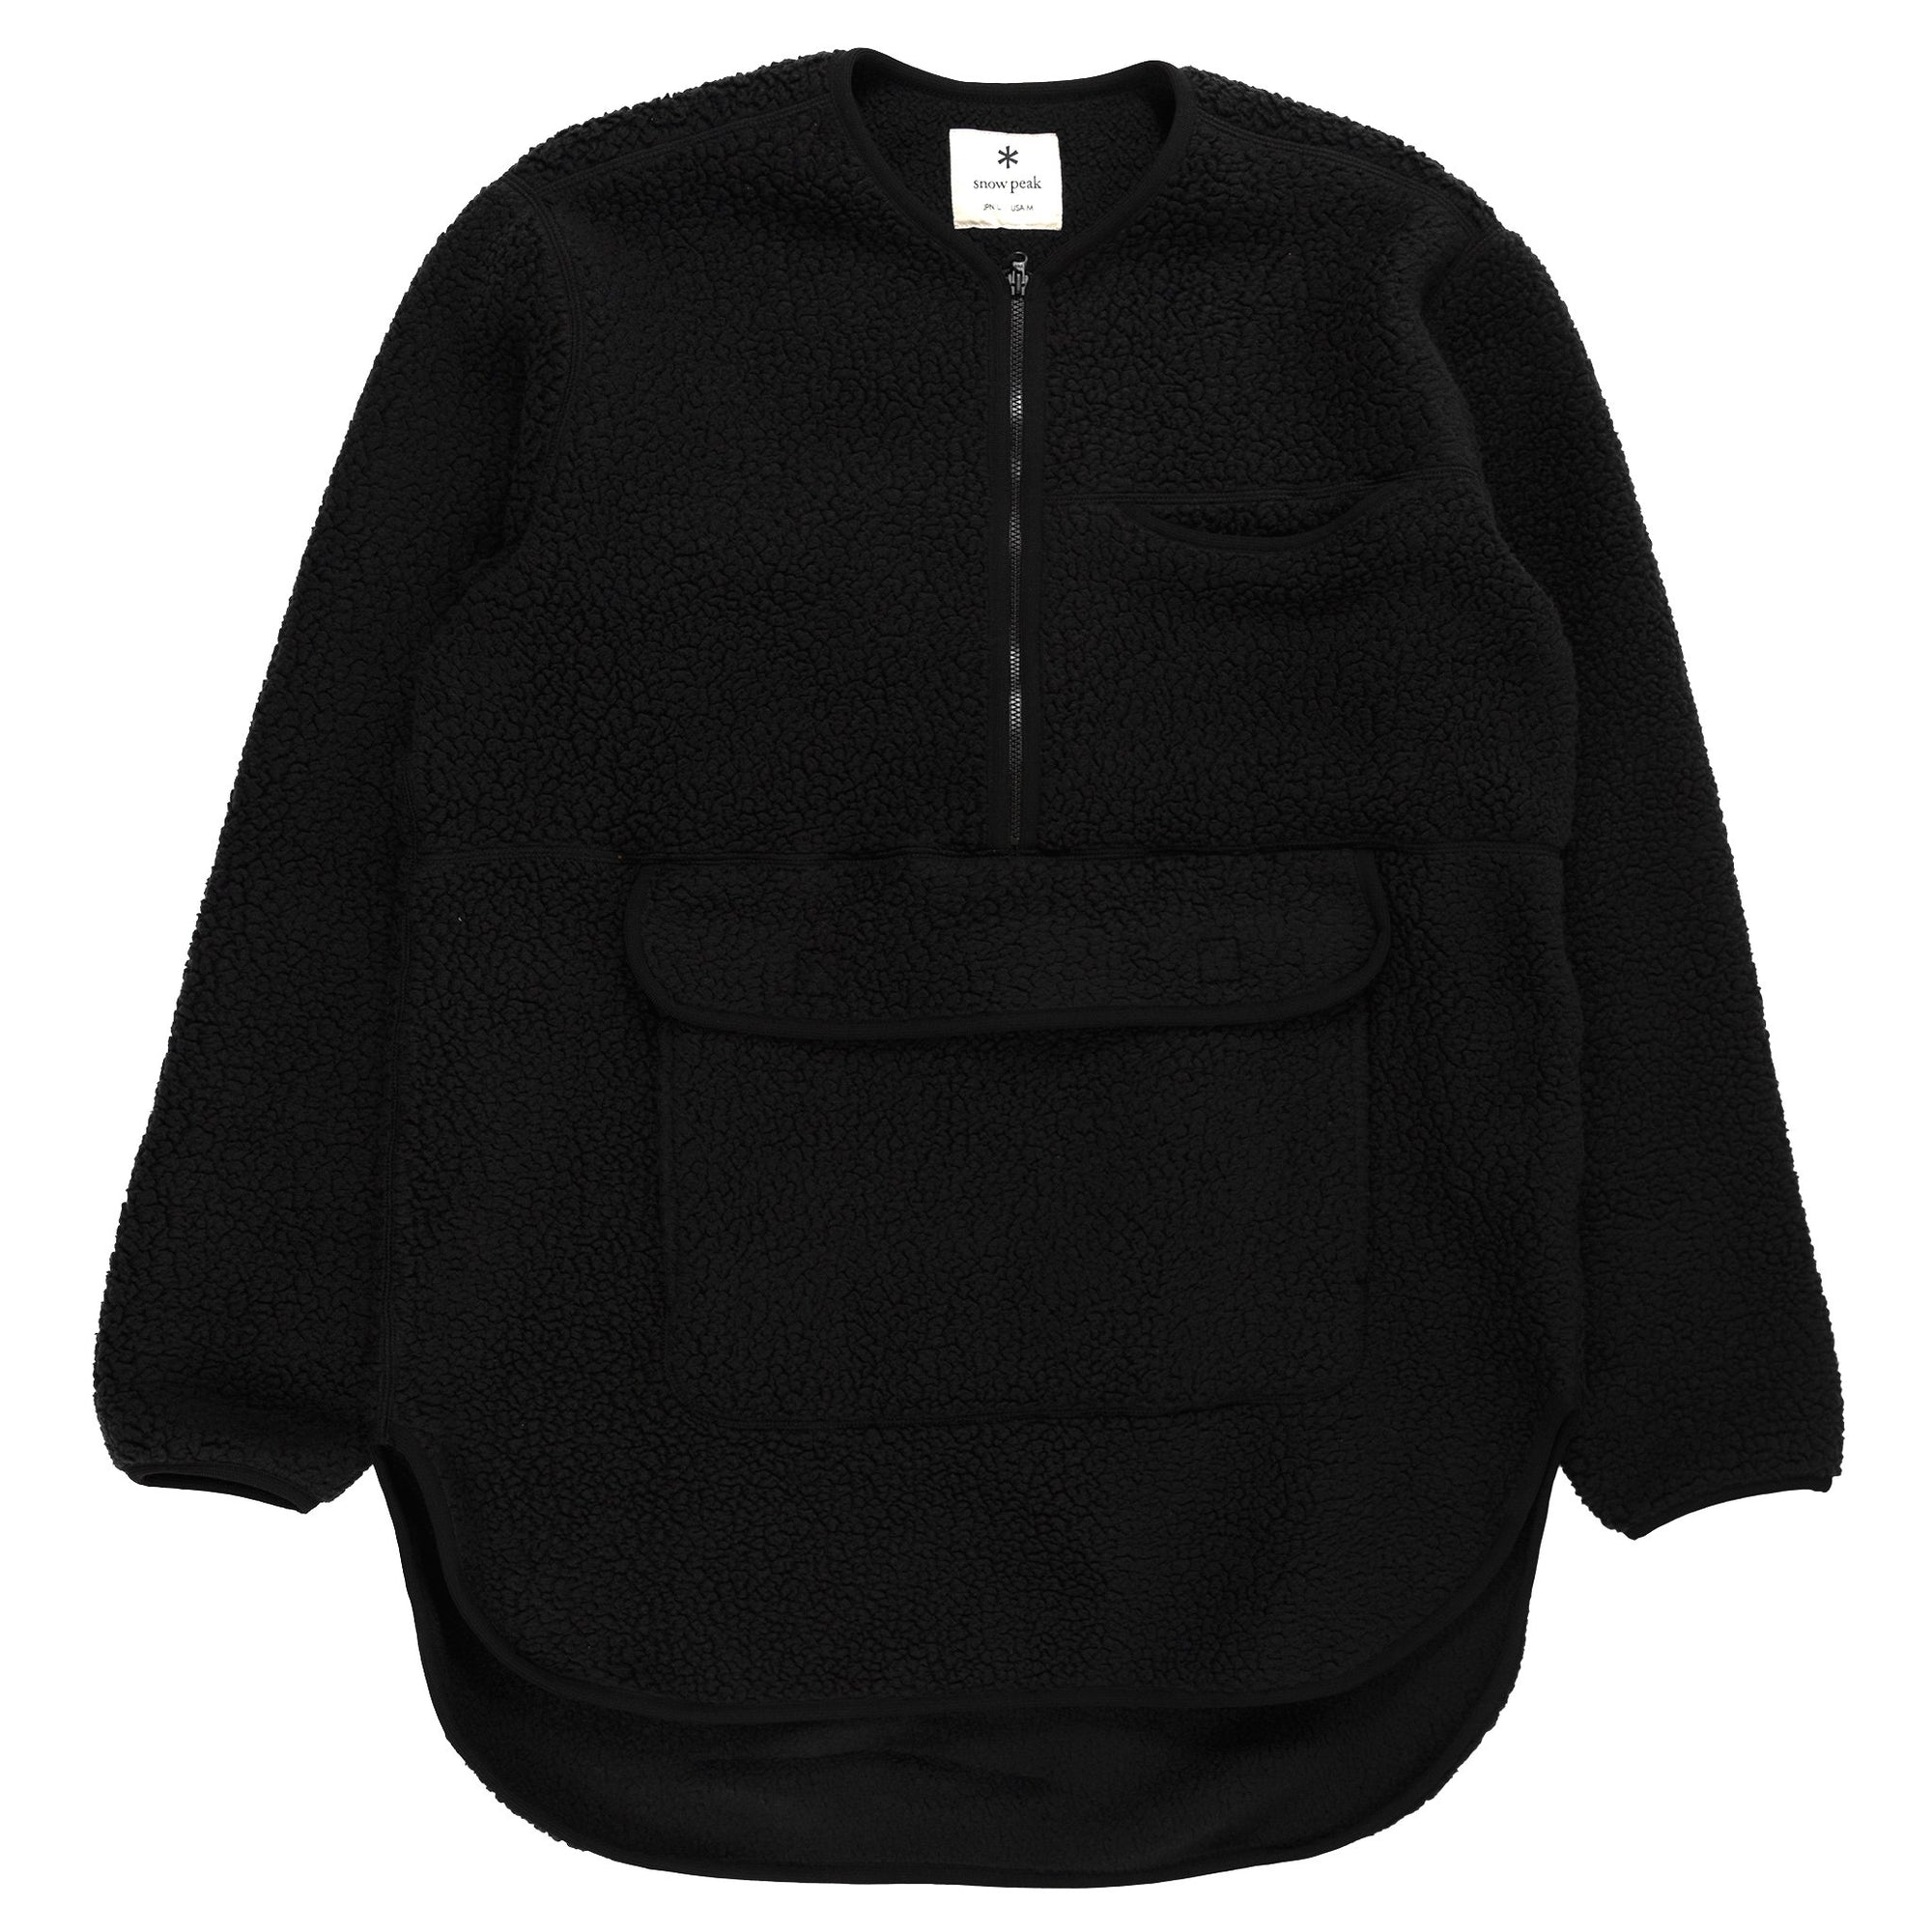 Snow Peak Classic Fleece Pullover in Black